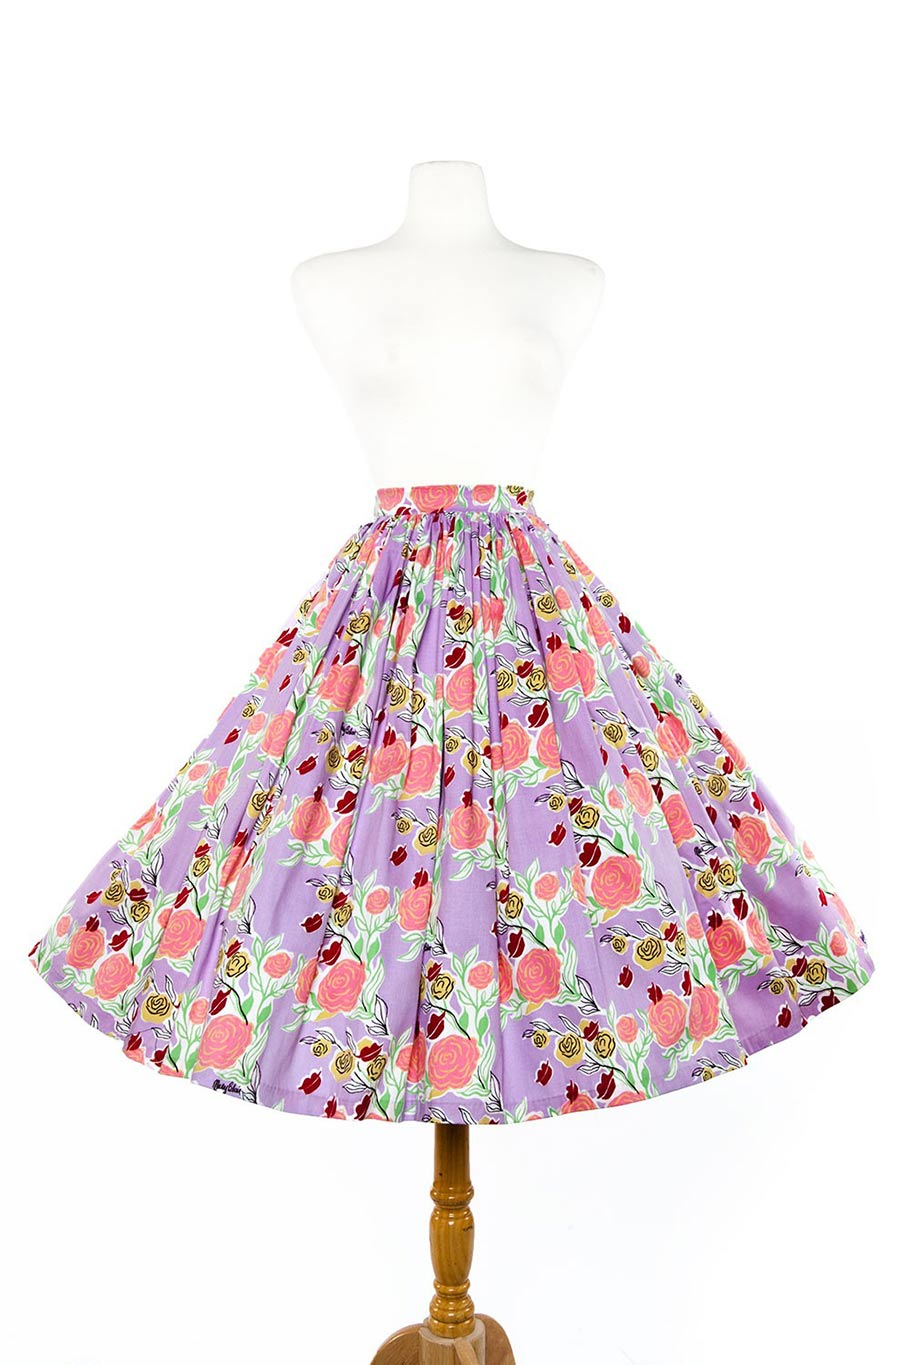 Jenny skirt in lips and roses print in lavender. (Click to enlarge.)